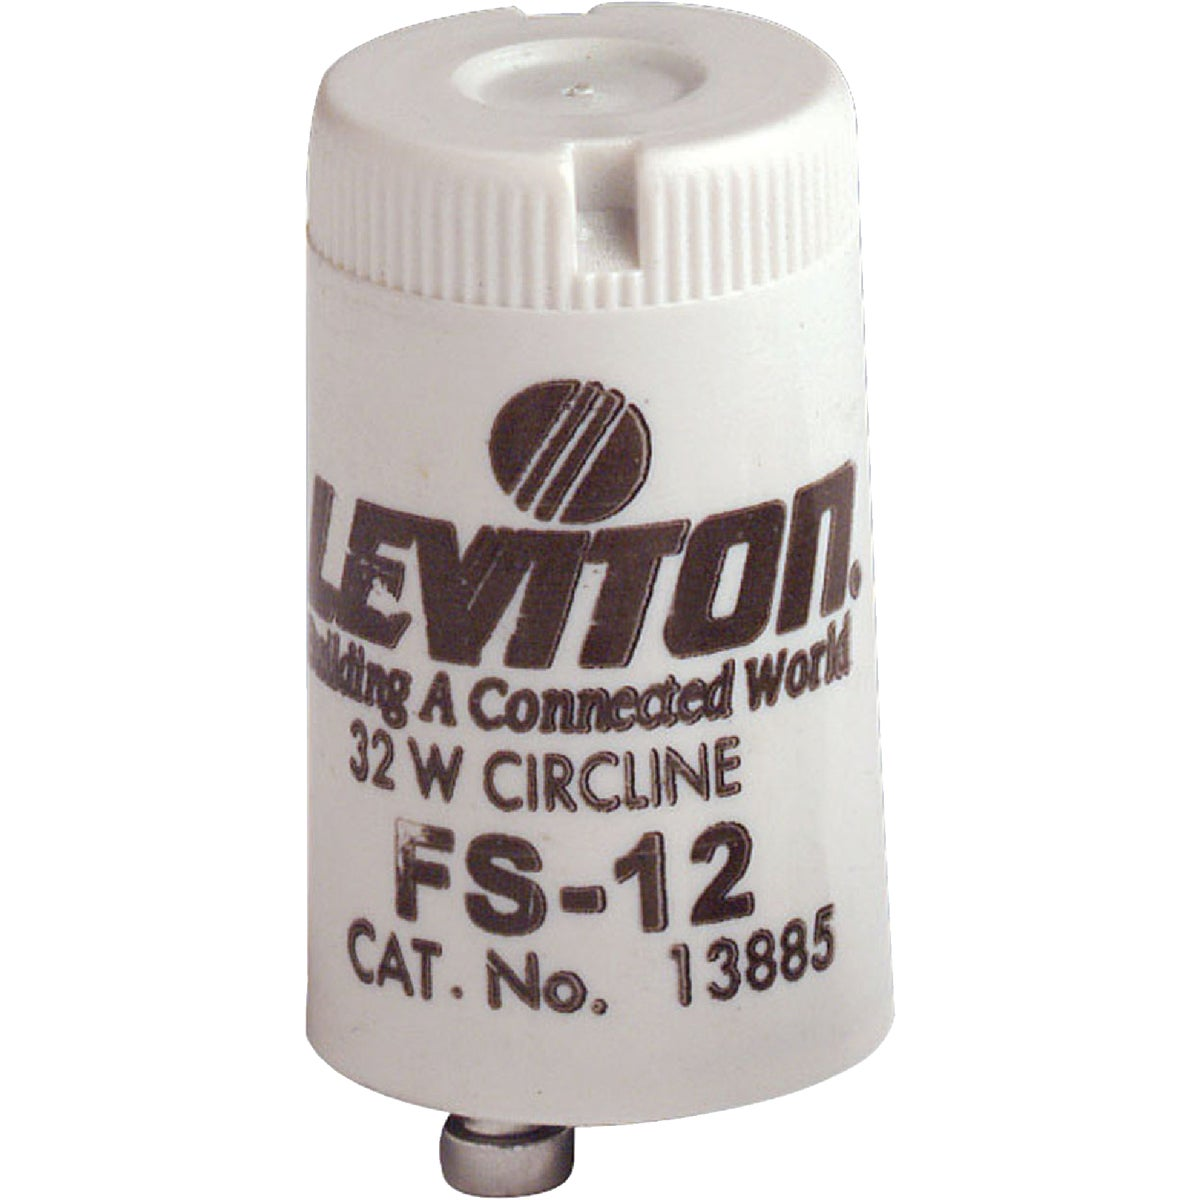 FLUOR STARTER - 00013885000 by Leviton Mfg Co